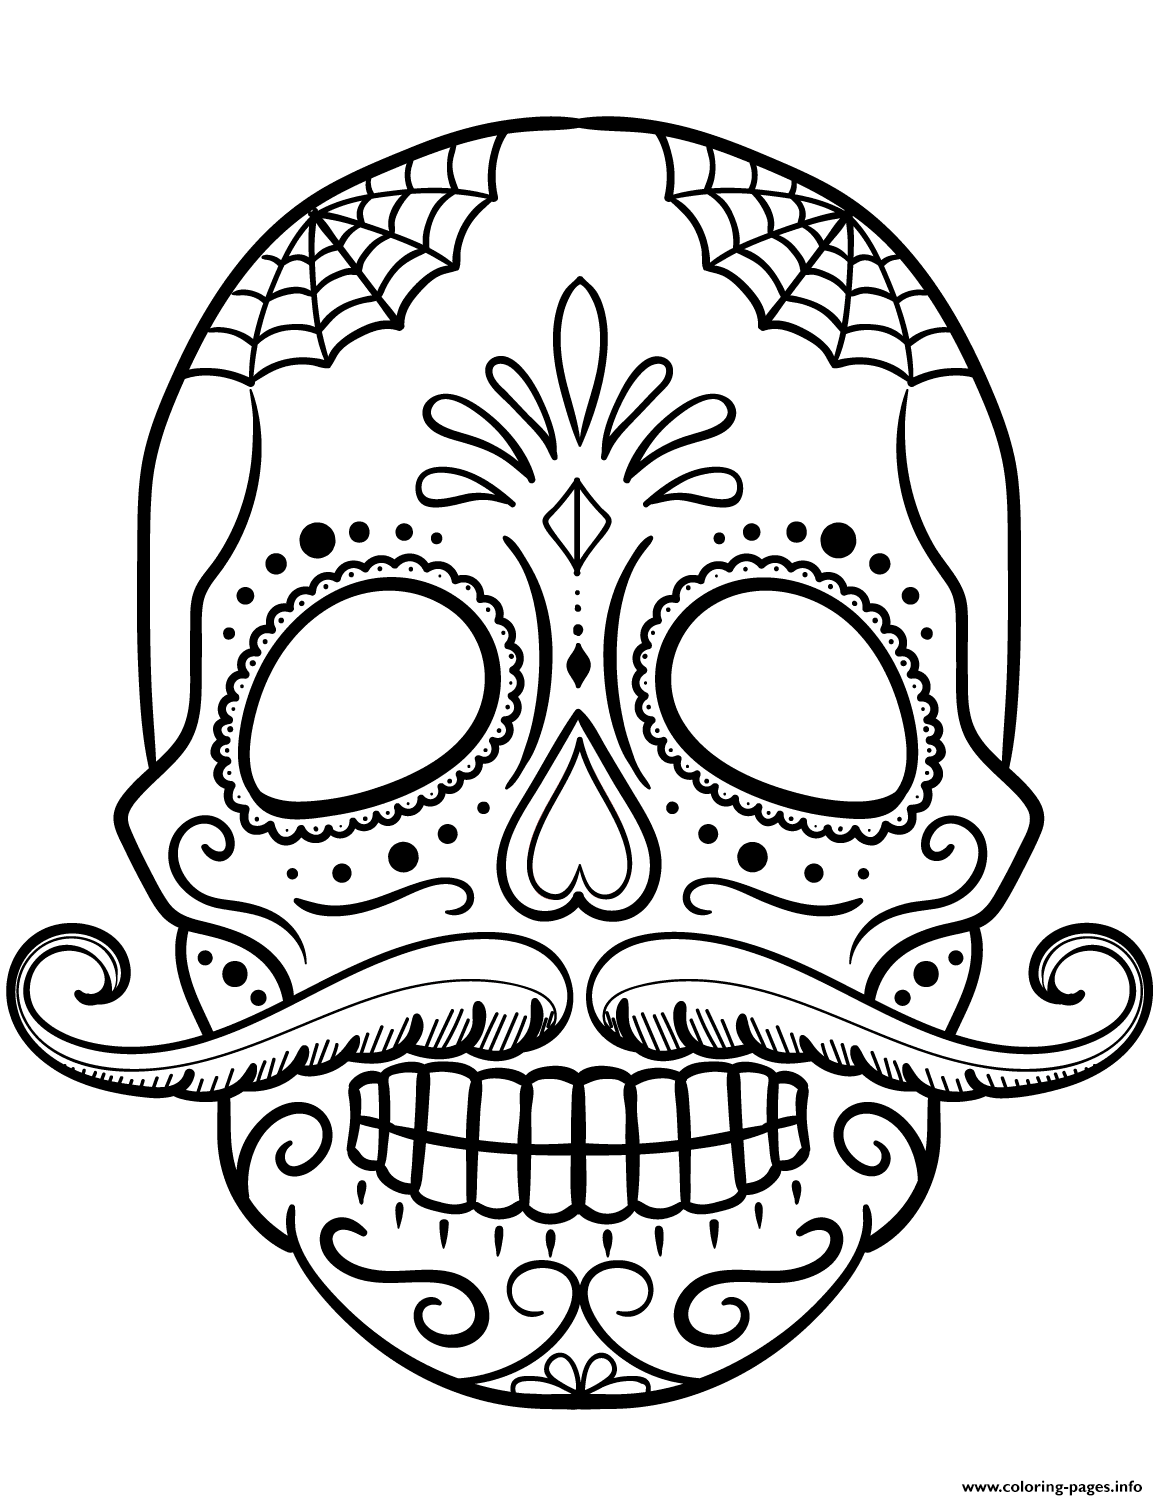 coloring star wars sugar skull army skull coloring pages coloring pages star wars sugar skull coloring